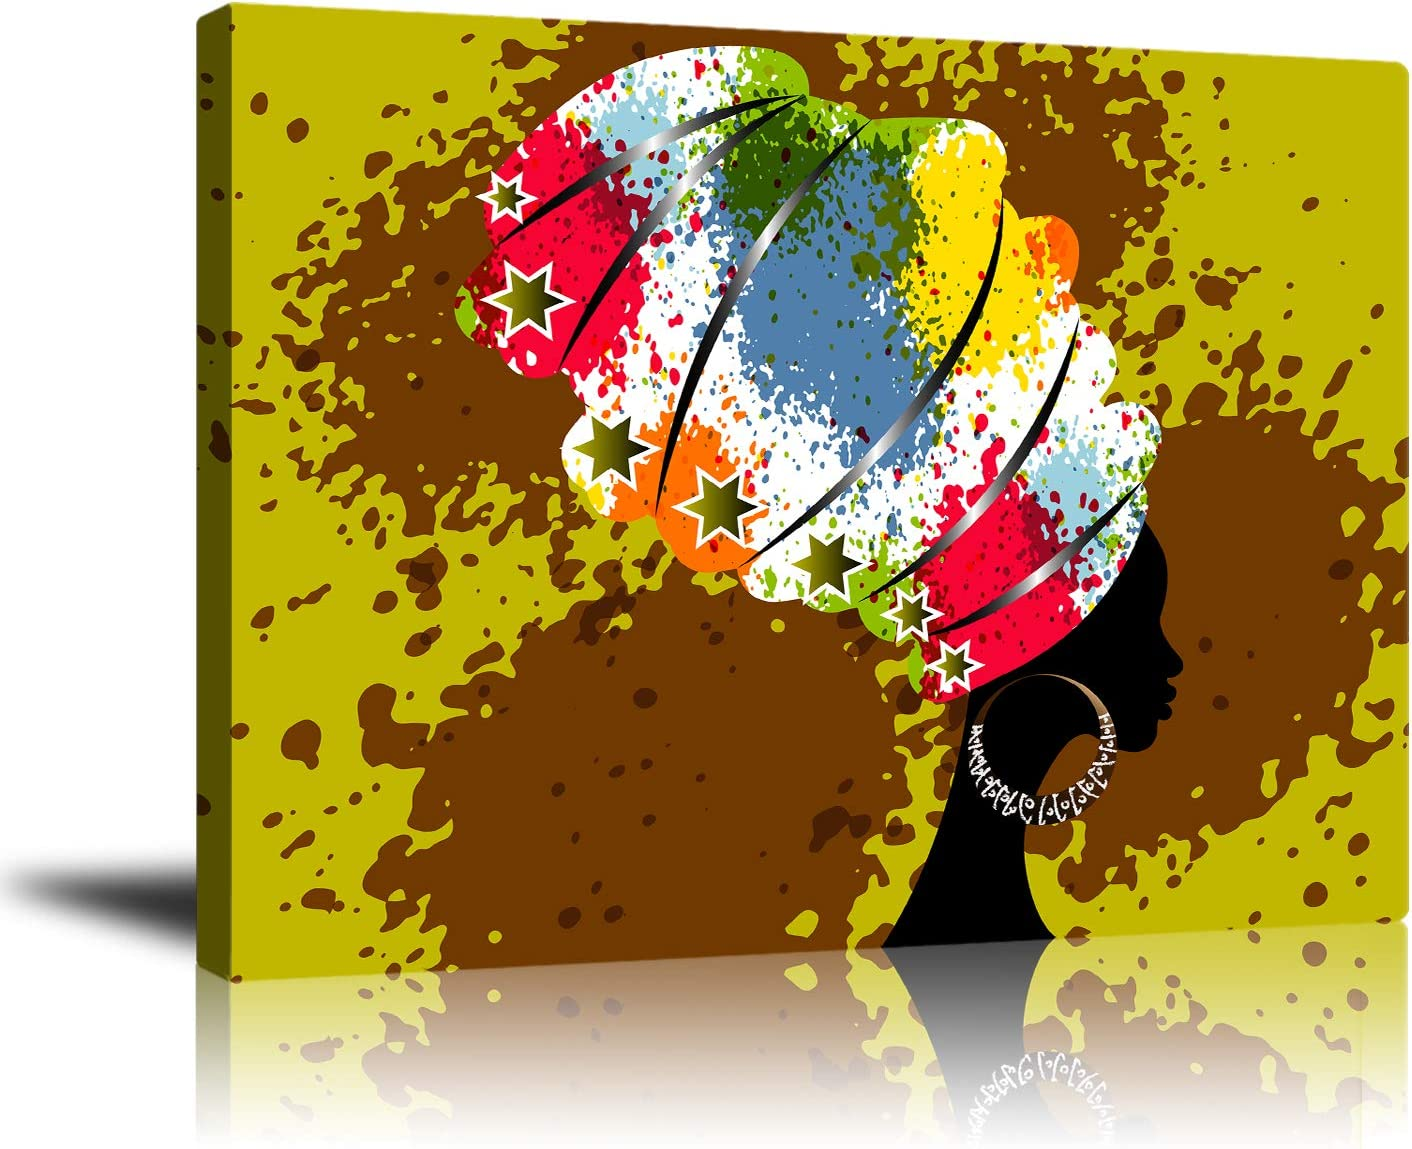 African American Black Women Wall Art for Living Room Decor, Colorful Headdress Portrait Canvas Print Vibrant Graffiti Poster Artwork for Bedroom Home Decoration Framed Ready to Hang 16x20 Inch